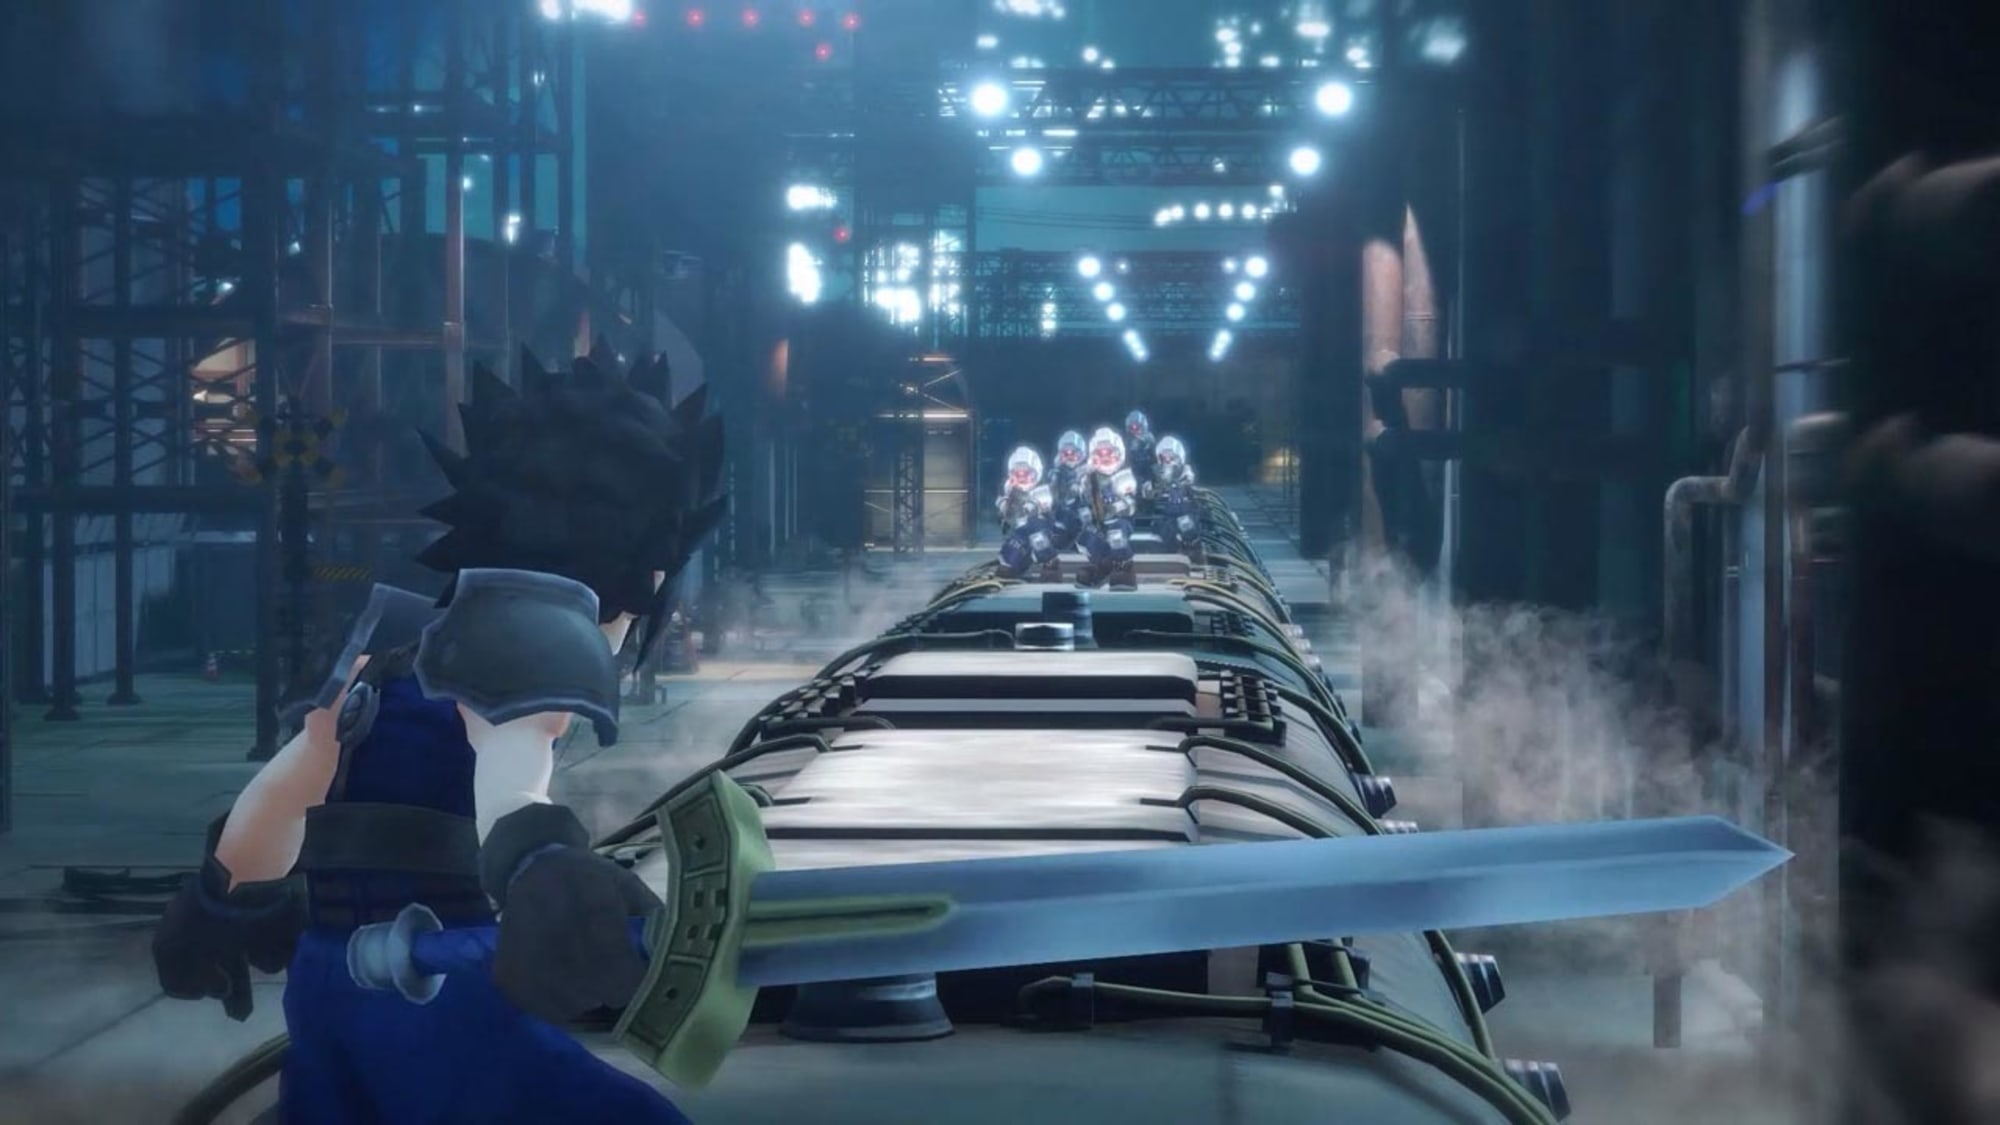 Final Fantasy VII Ever Crisis is a remake of the entire FFVII timeline